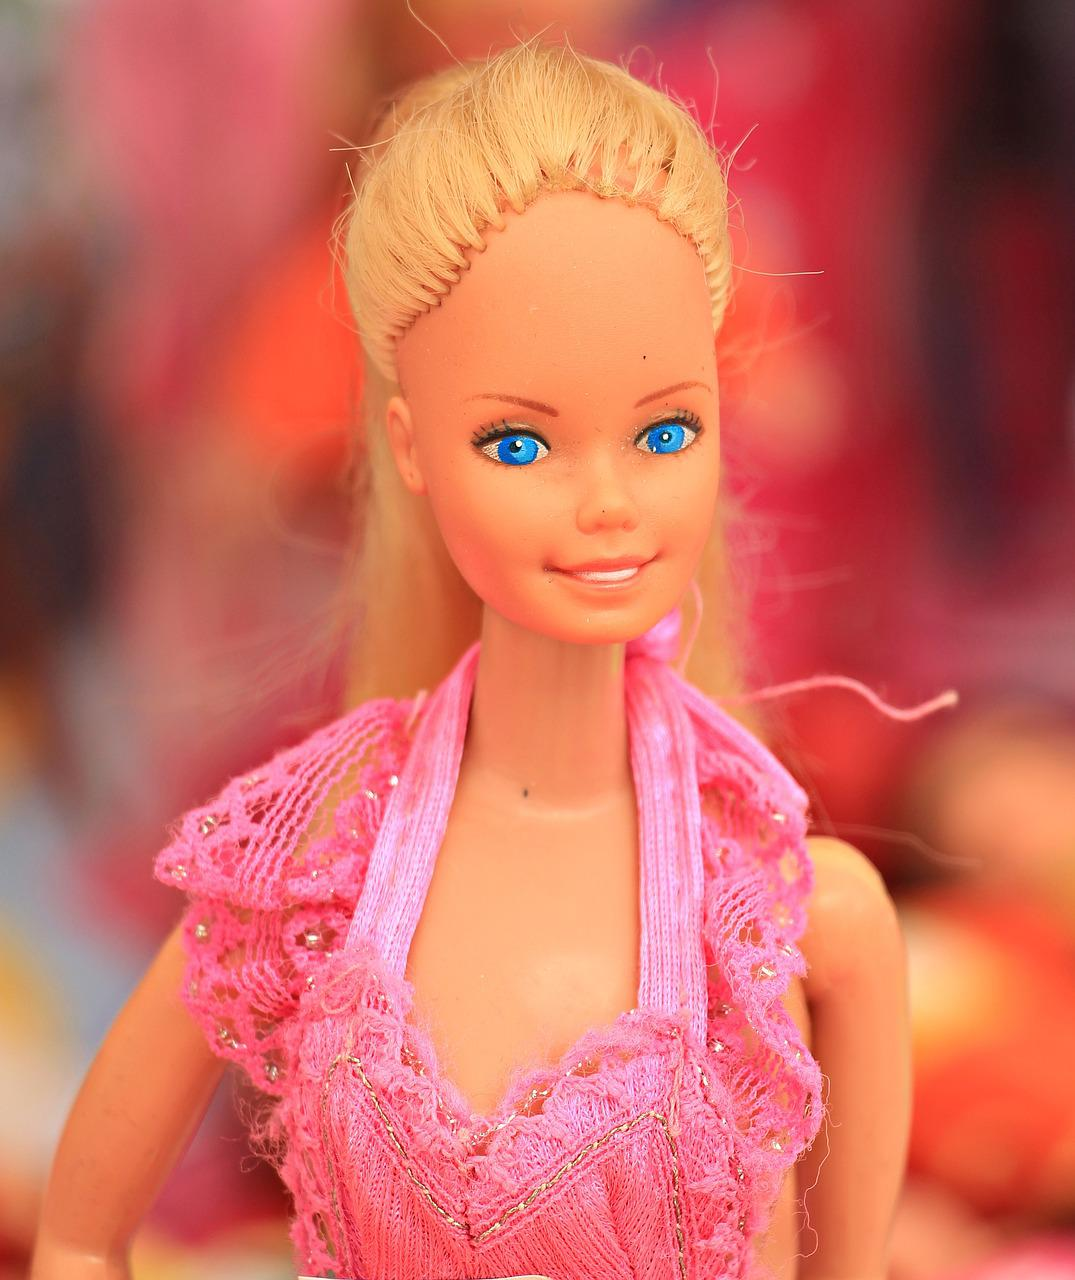 the protagonist in the story of barbie dolls Barbie is best known as a toy dollstarting as just a doll, barbie became a brandit is most common in the united statesit is named after a girl named barbara barbara was the toy maker's daughter.